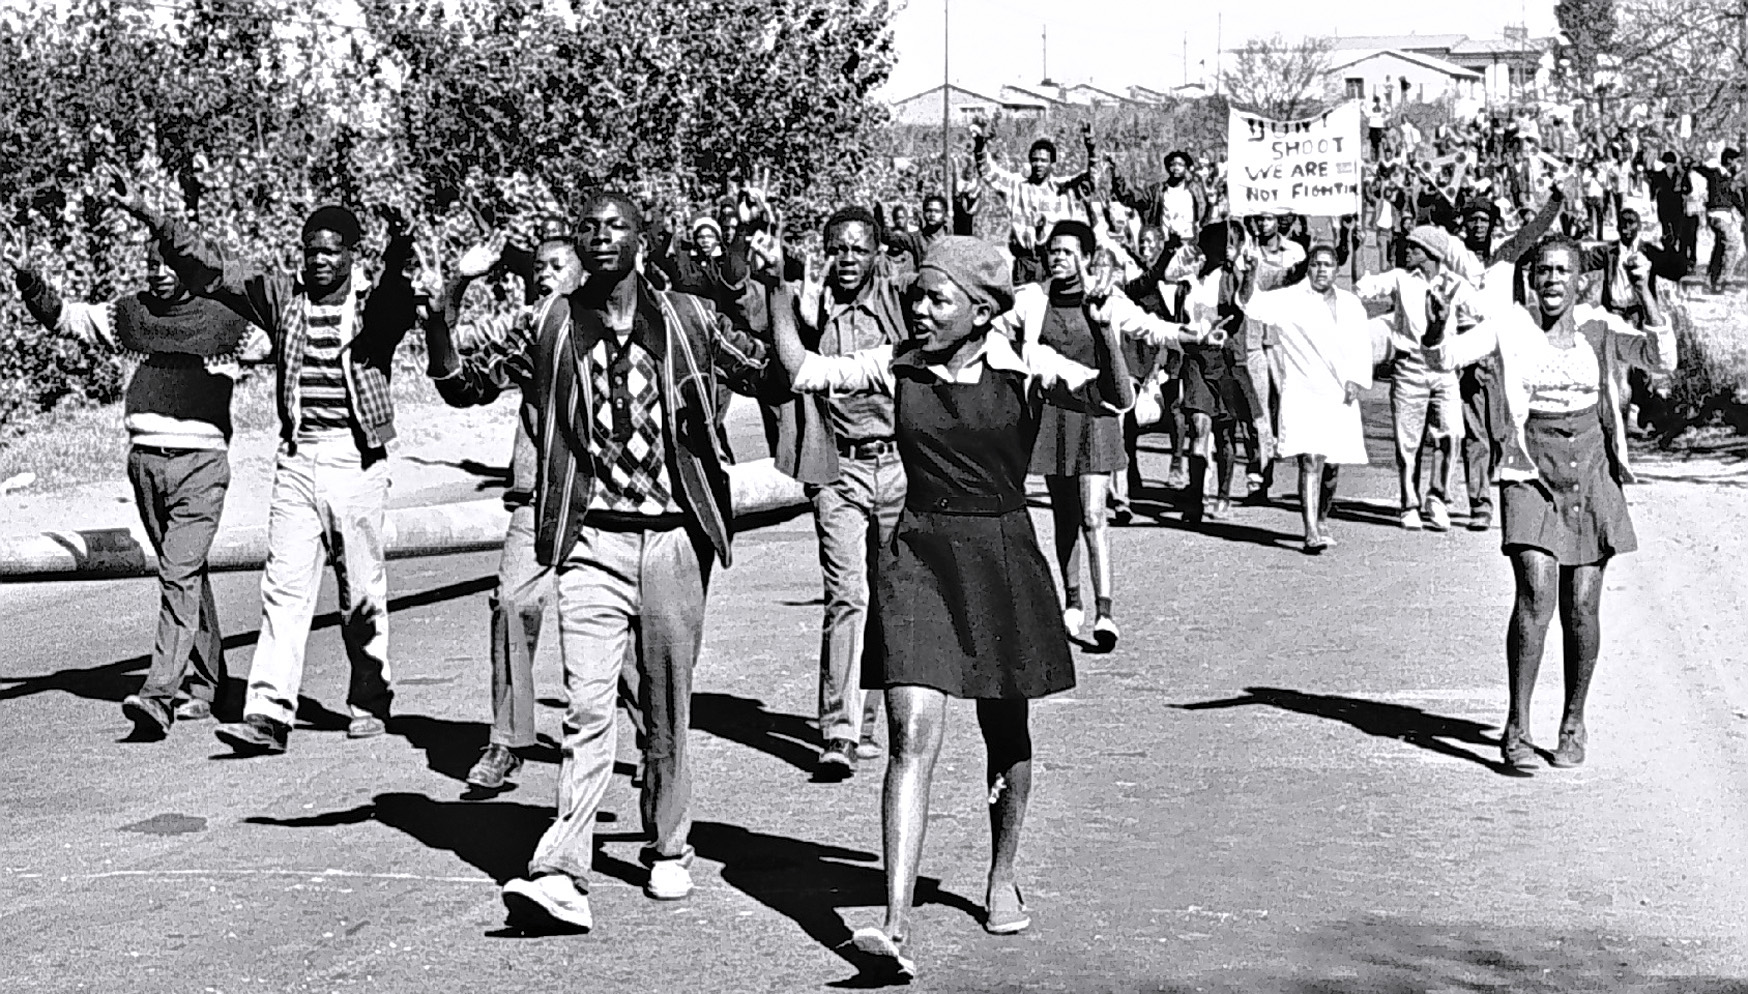 an introduction to the issue of apartheid in modern south africa The making of modern south africa it still seems like a more recent issue during the 1950s and 1960s in apartheid south africa the article on south asians.